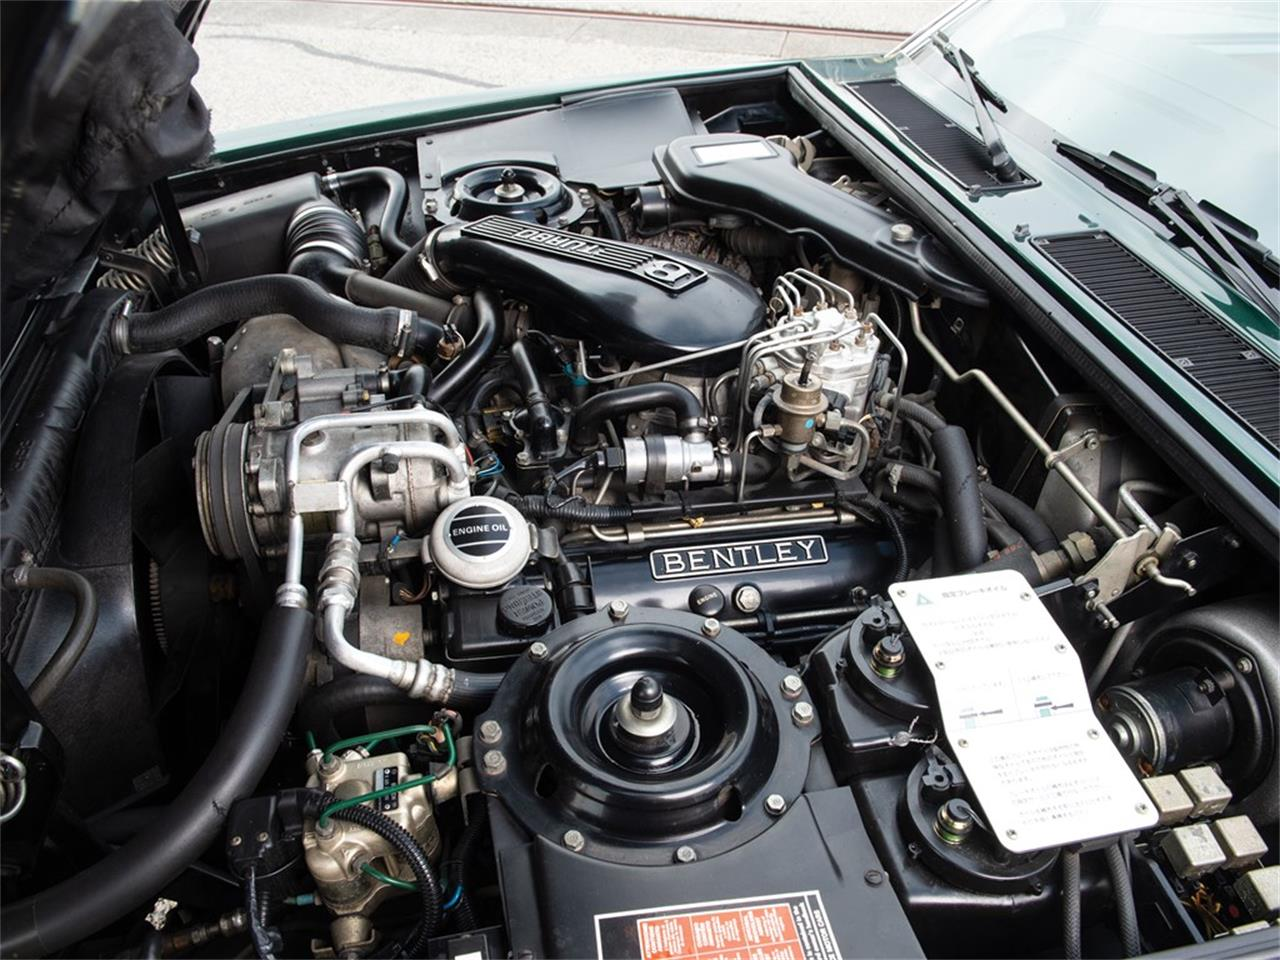 1991 Bentley Turbo R for sale in Essen, Other – photo 3